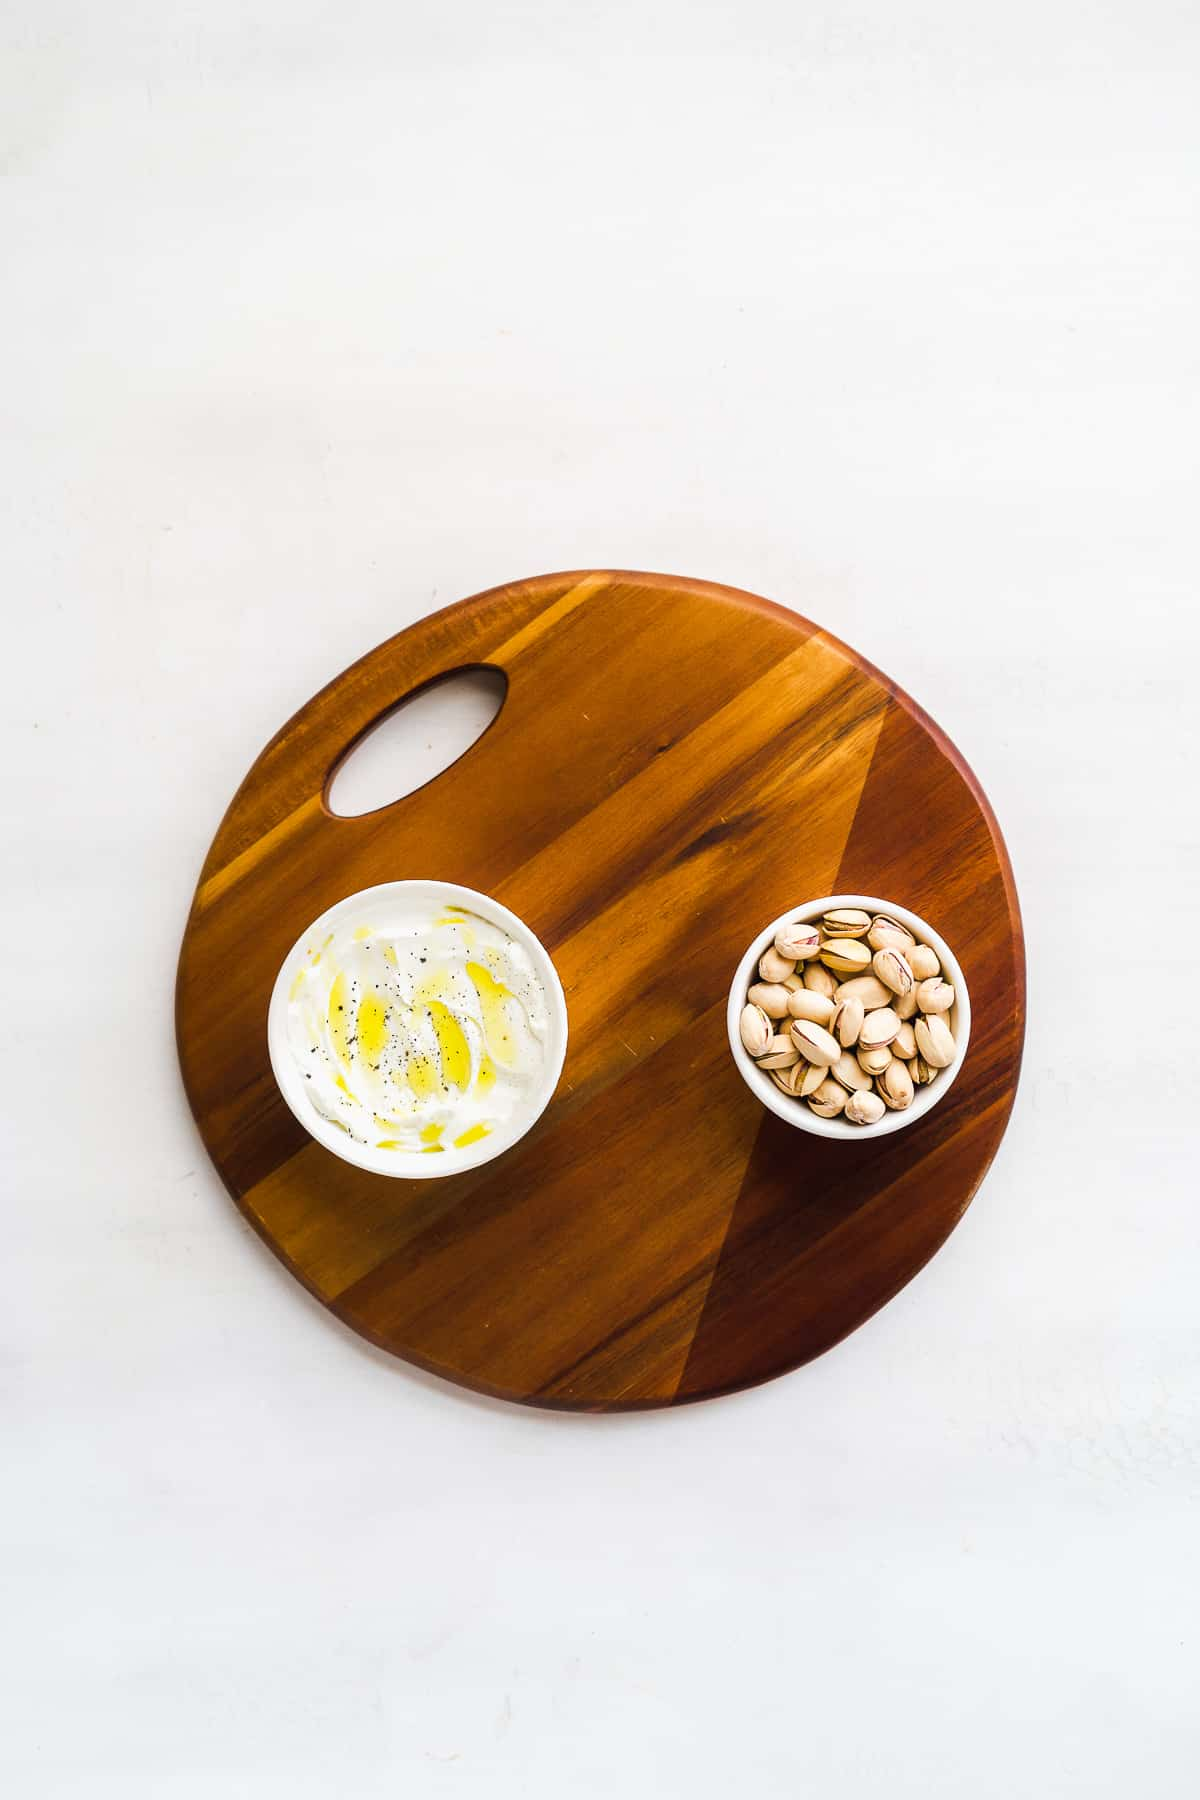 Wooden circular platter with two bowls on it on a white surface.